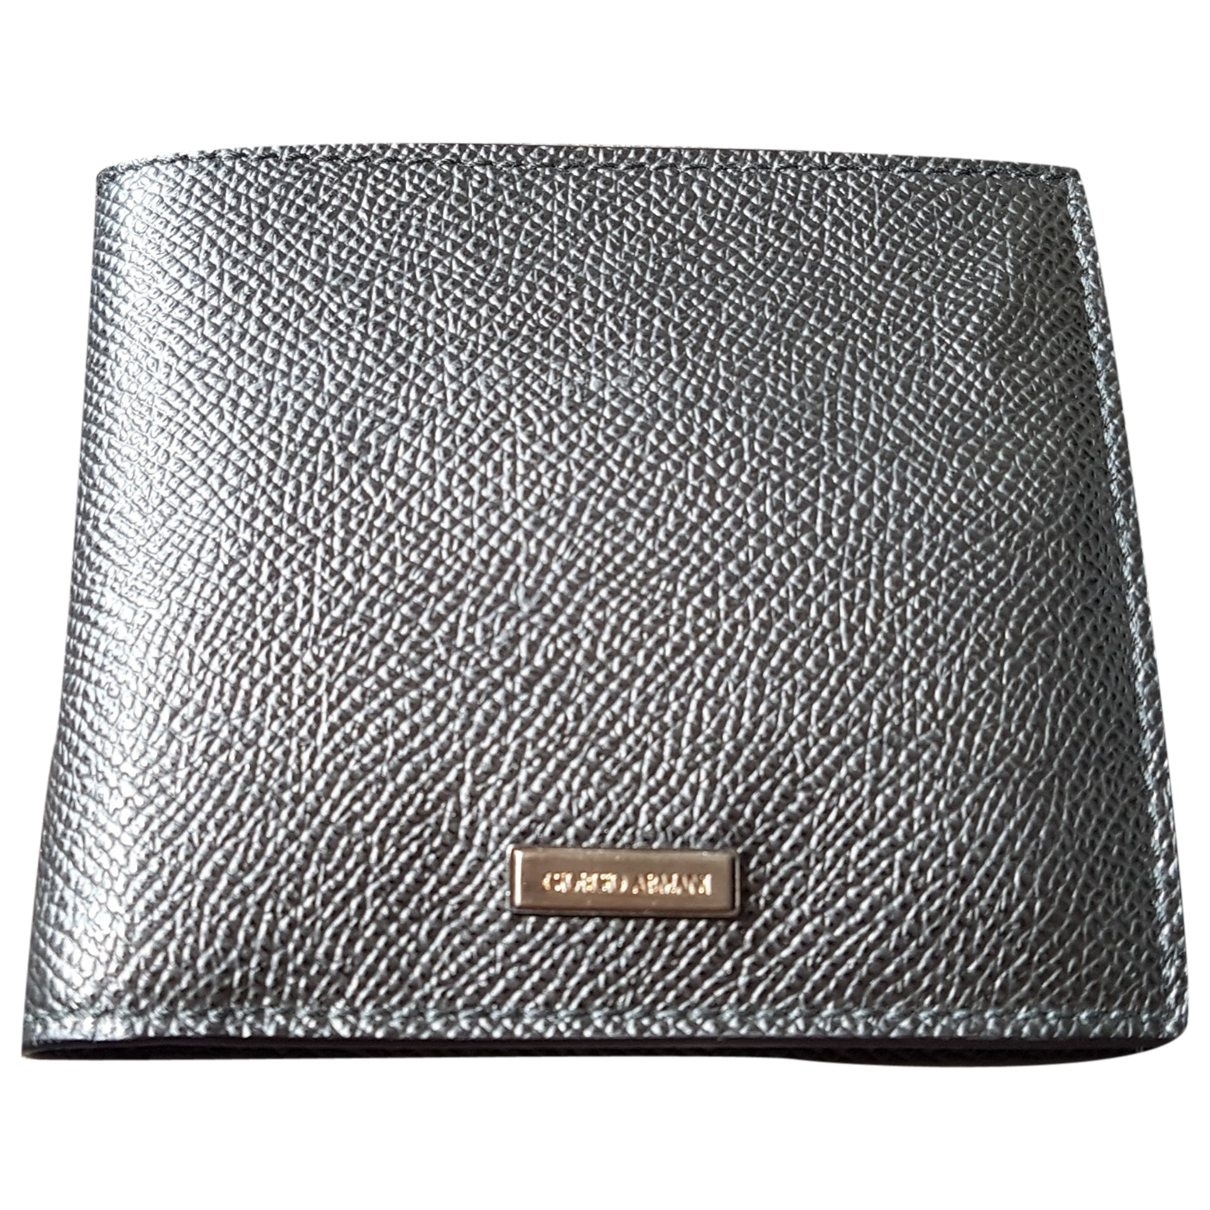 Giorgio Armani \N Black Leather Small bag, wallet & cases for Men \N